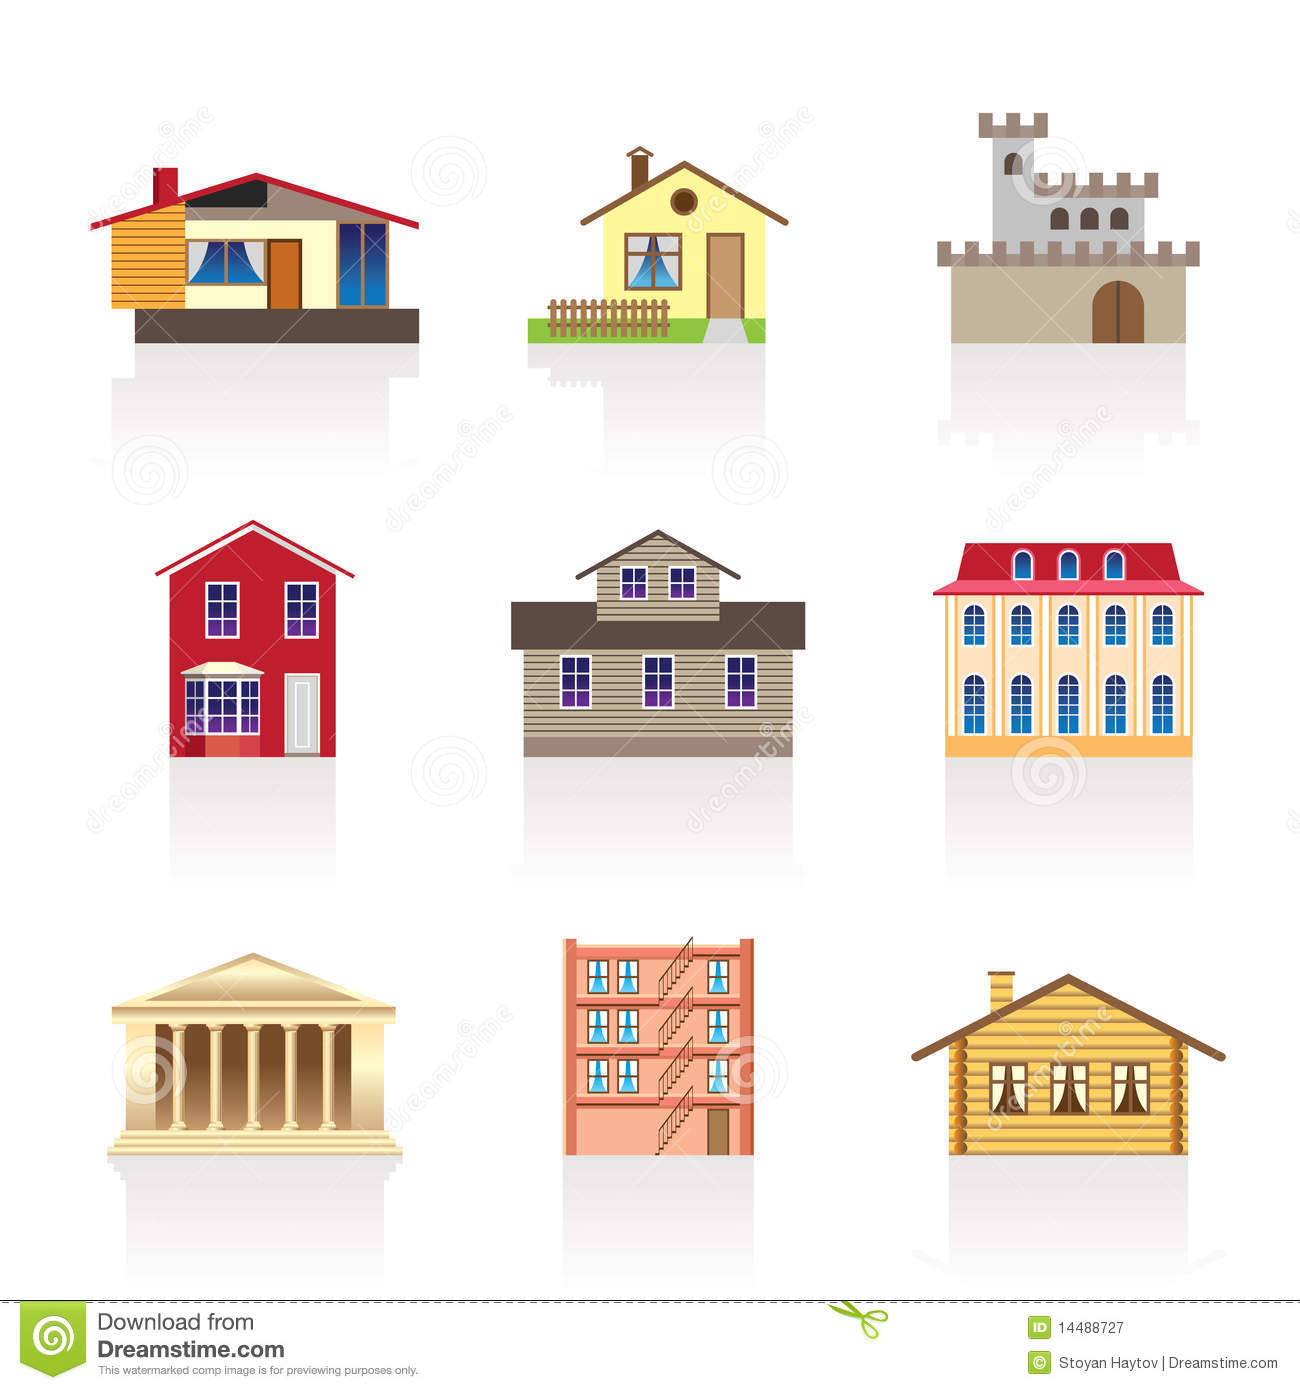 Surprising Different Kind Of Houses And Buildings 1 Royalty Free Stock Largest Home Design Picture Inspirations Pitcheantrous